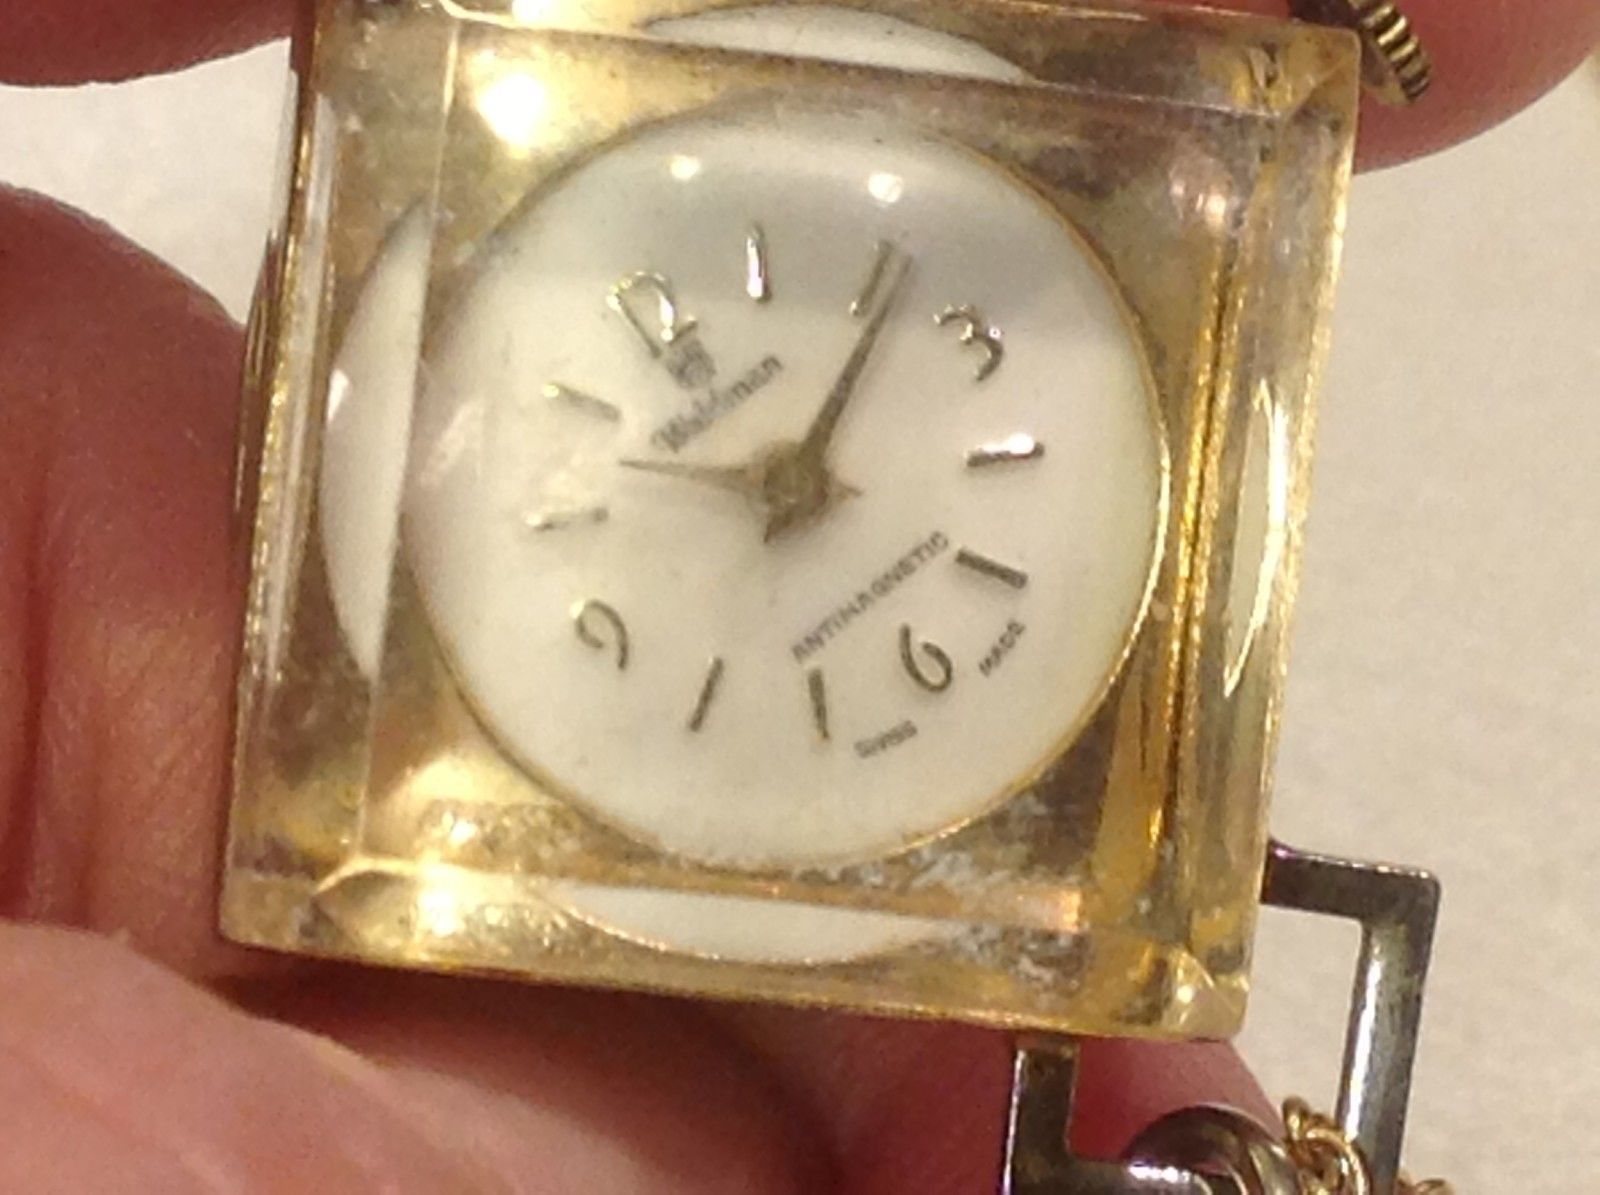 Vintage Swiss made Waldman pocket watch on chain in acrylic unique square case